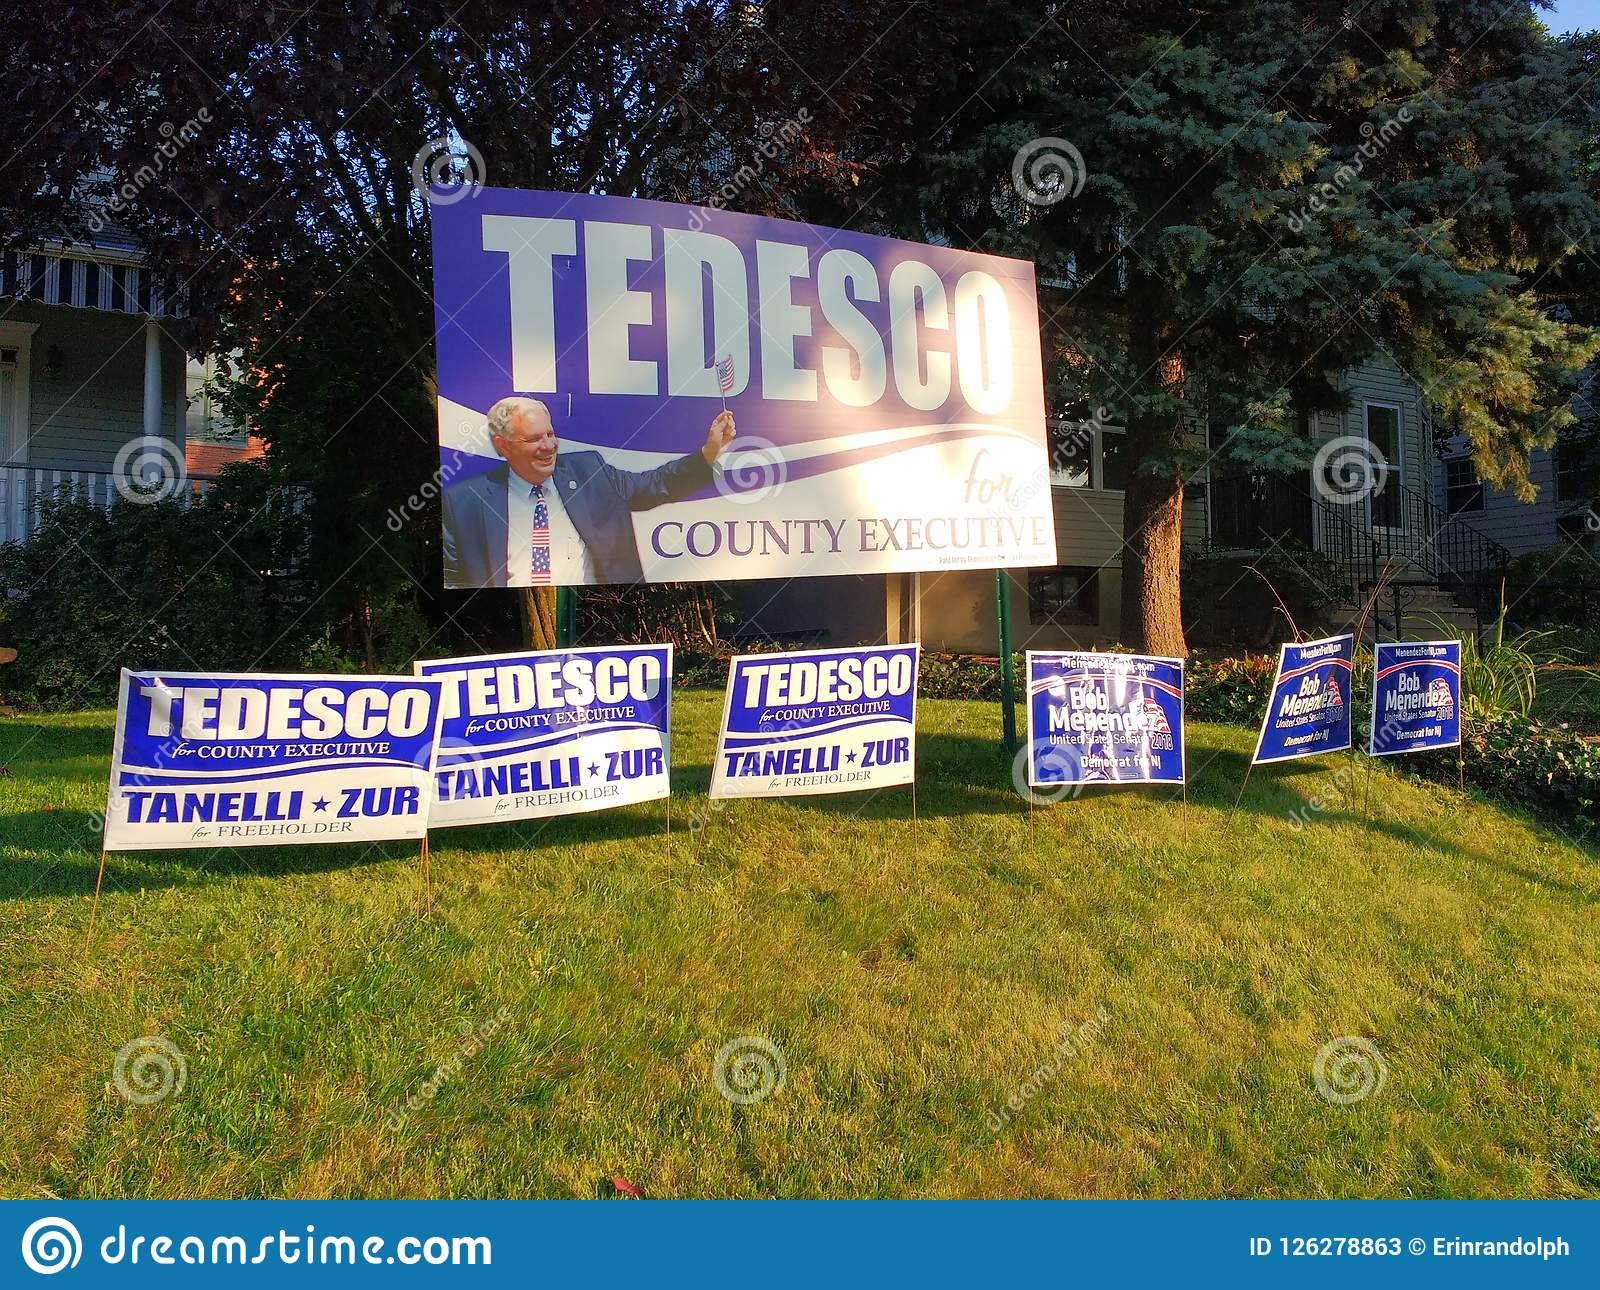 Yard Signs, Lawn Signs Endorsing American Political Candidates, Rutherford, NJ, USA